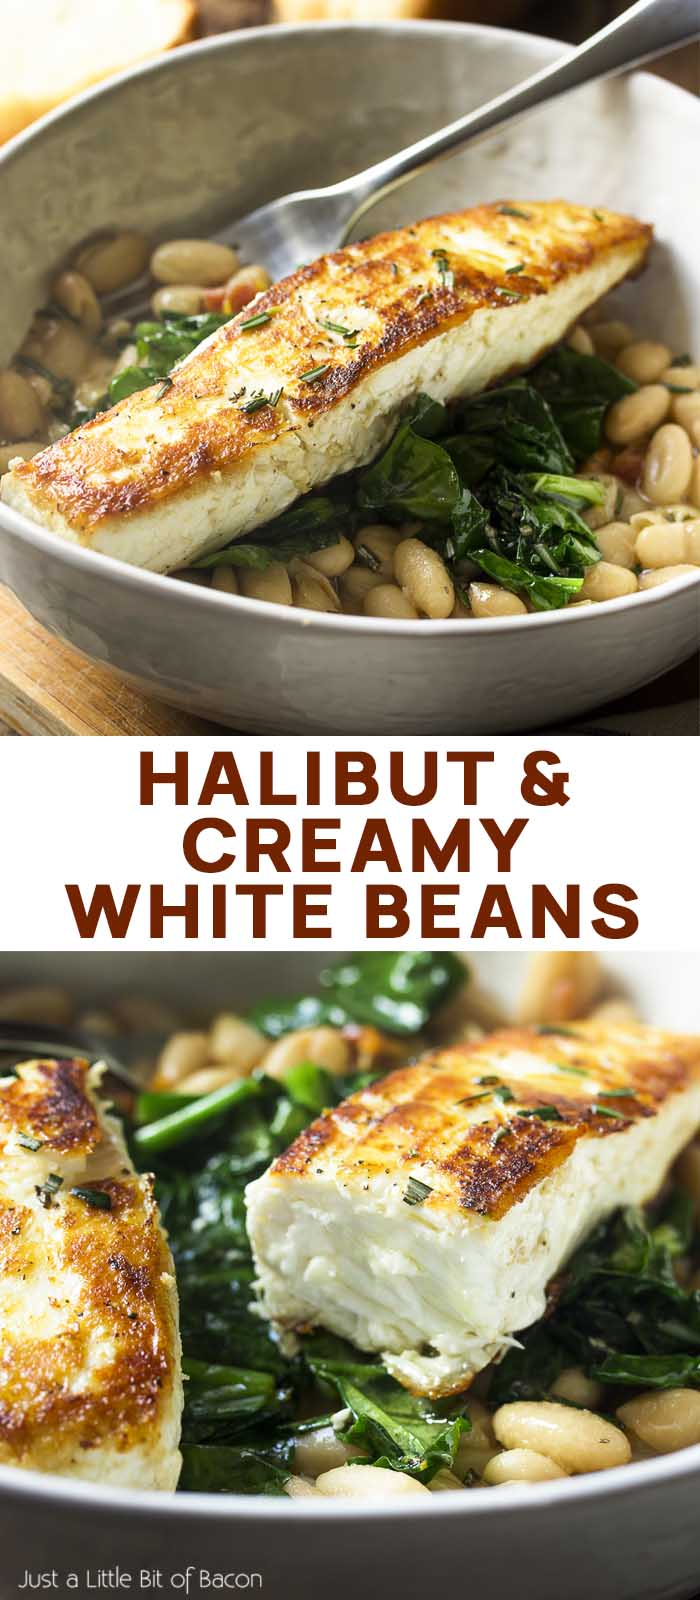 Two views of the recipe with text overlay - Halibut and Creamy White Beans.